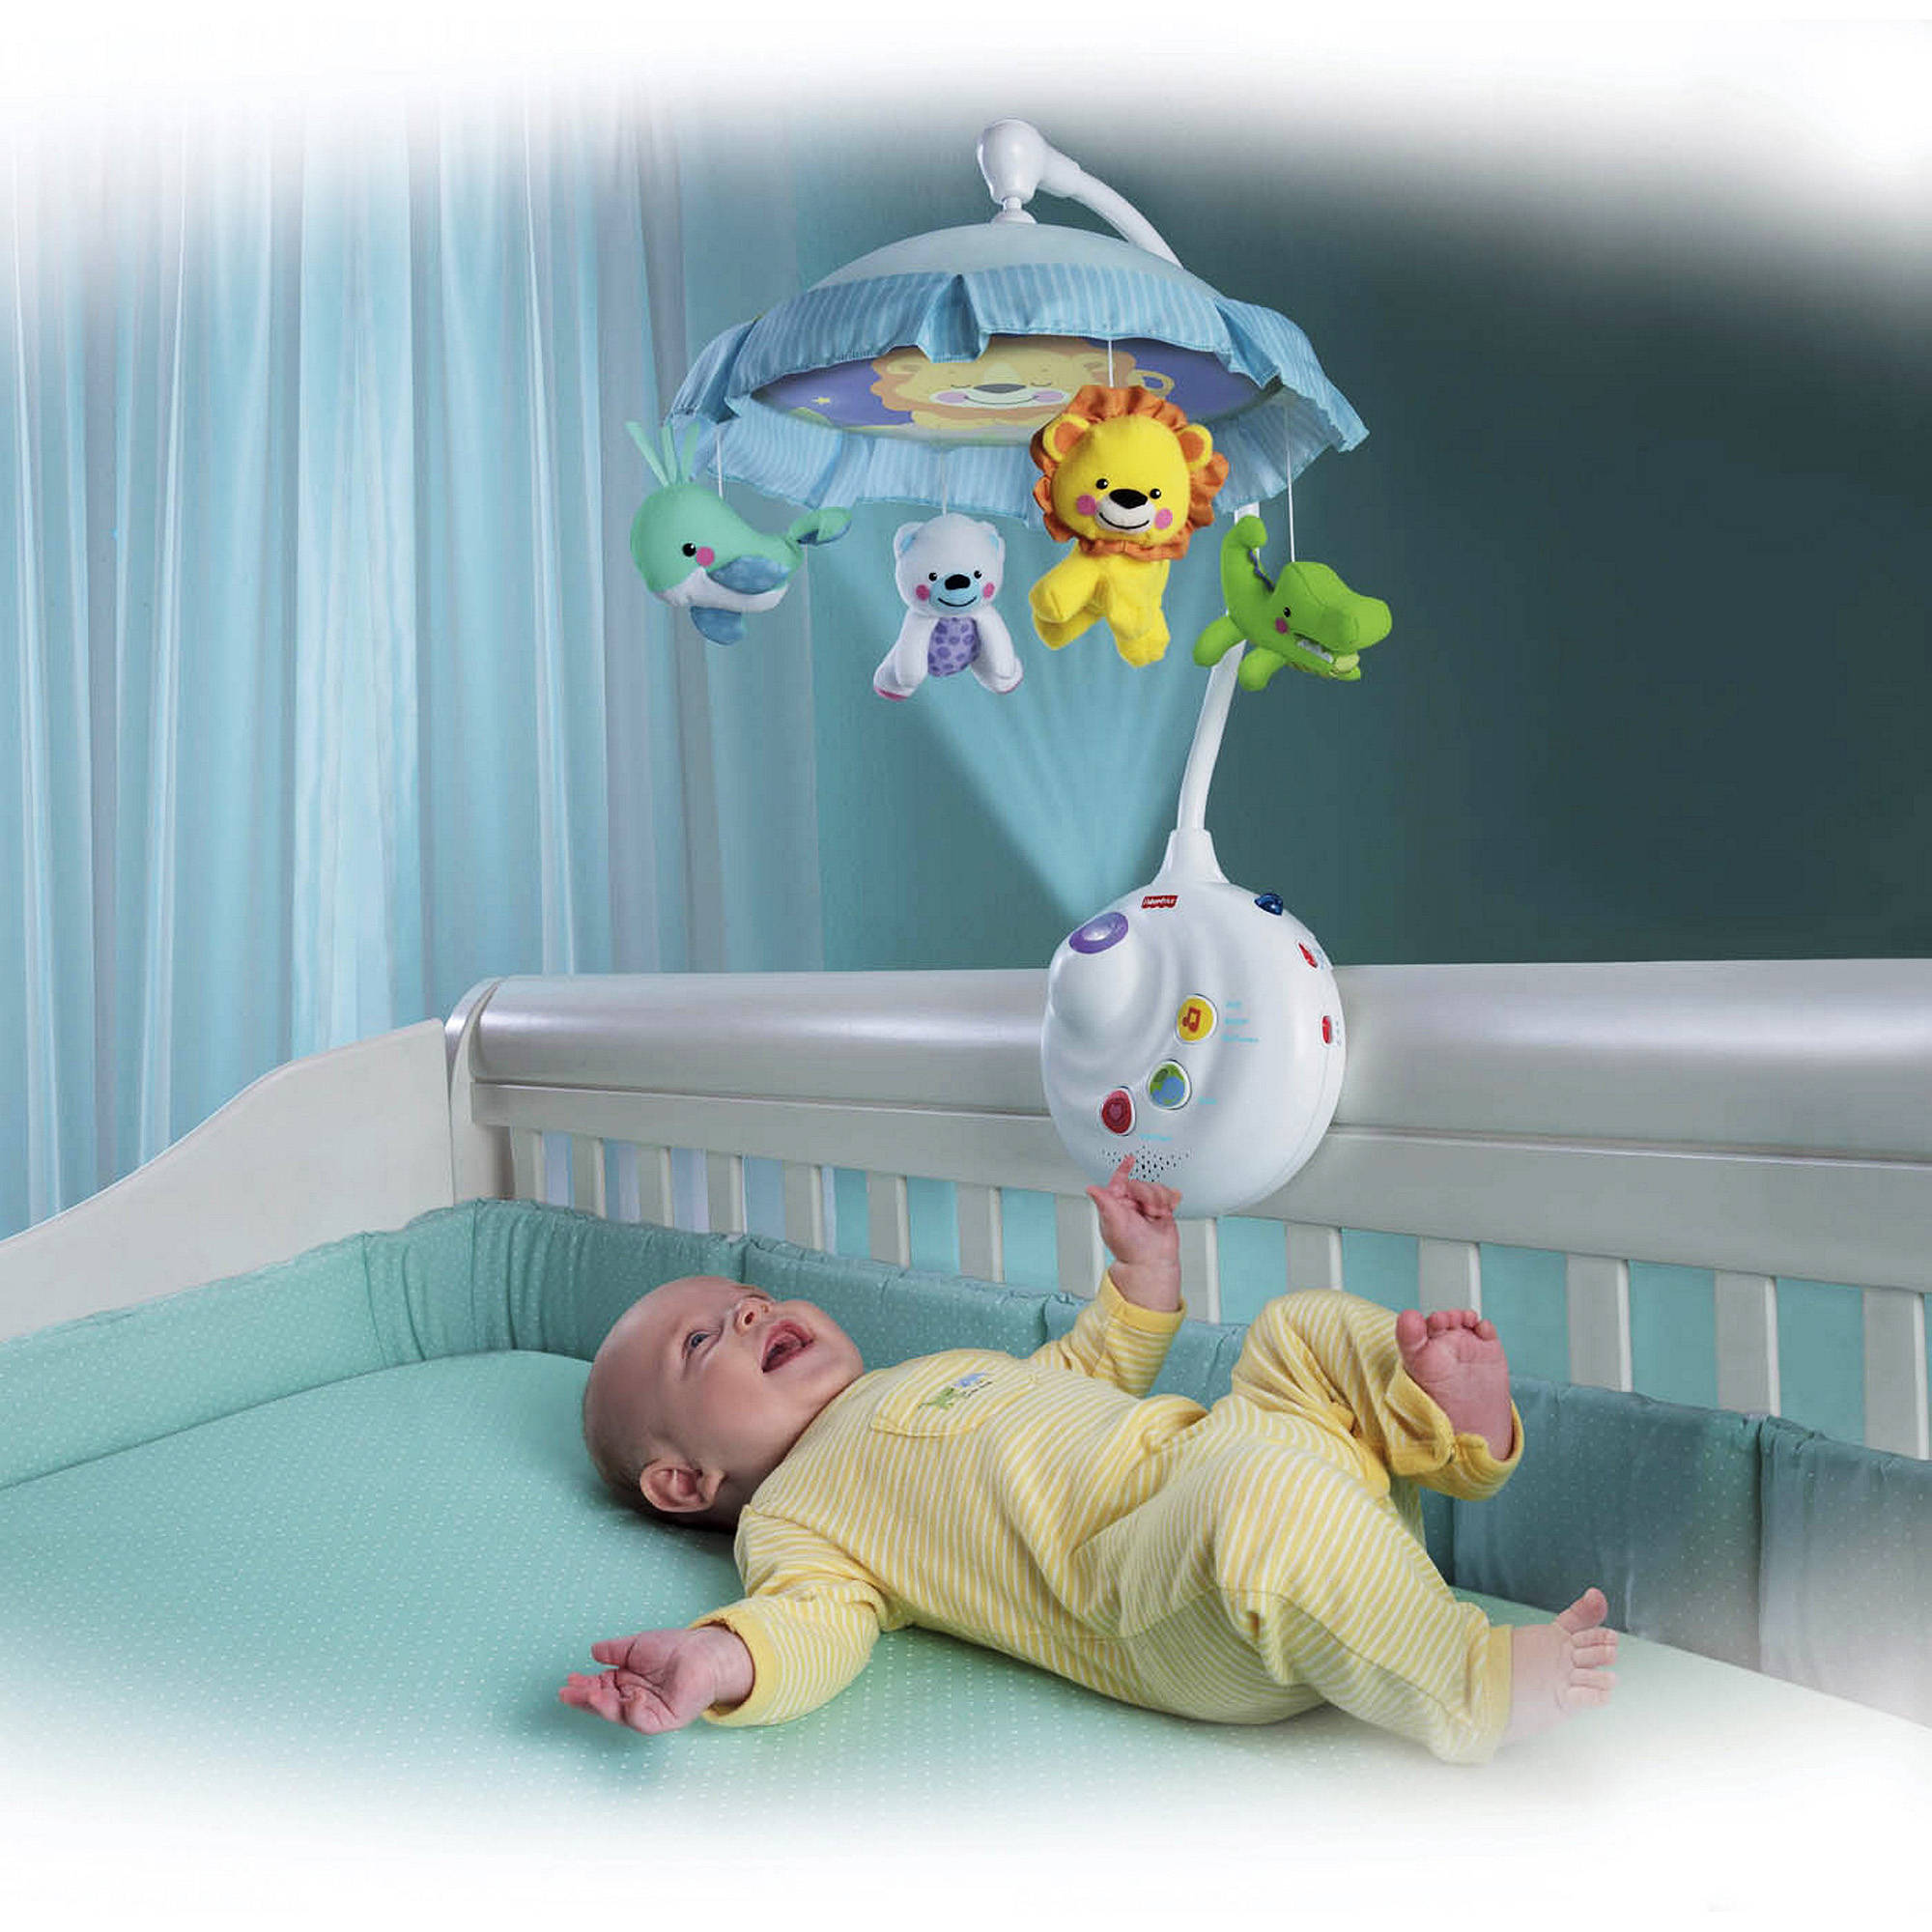 fisherprice in projection crib mobile precious planet  - fisherprice in projection crib mobile precious planet  walmartcom